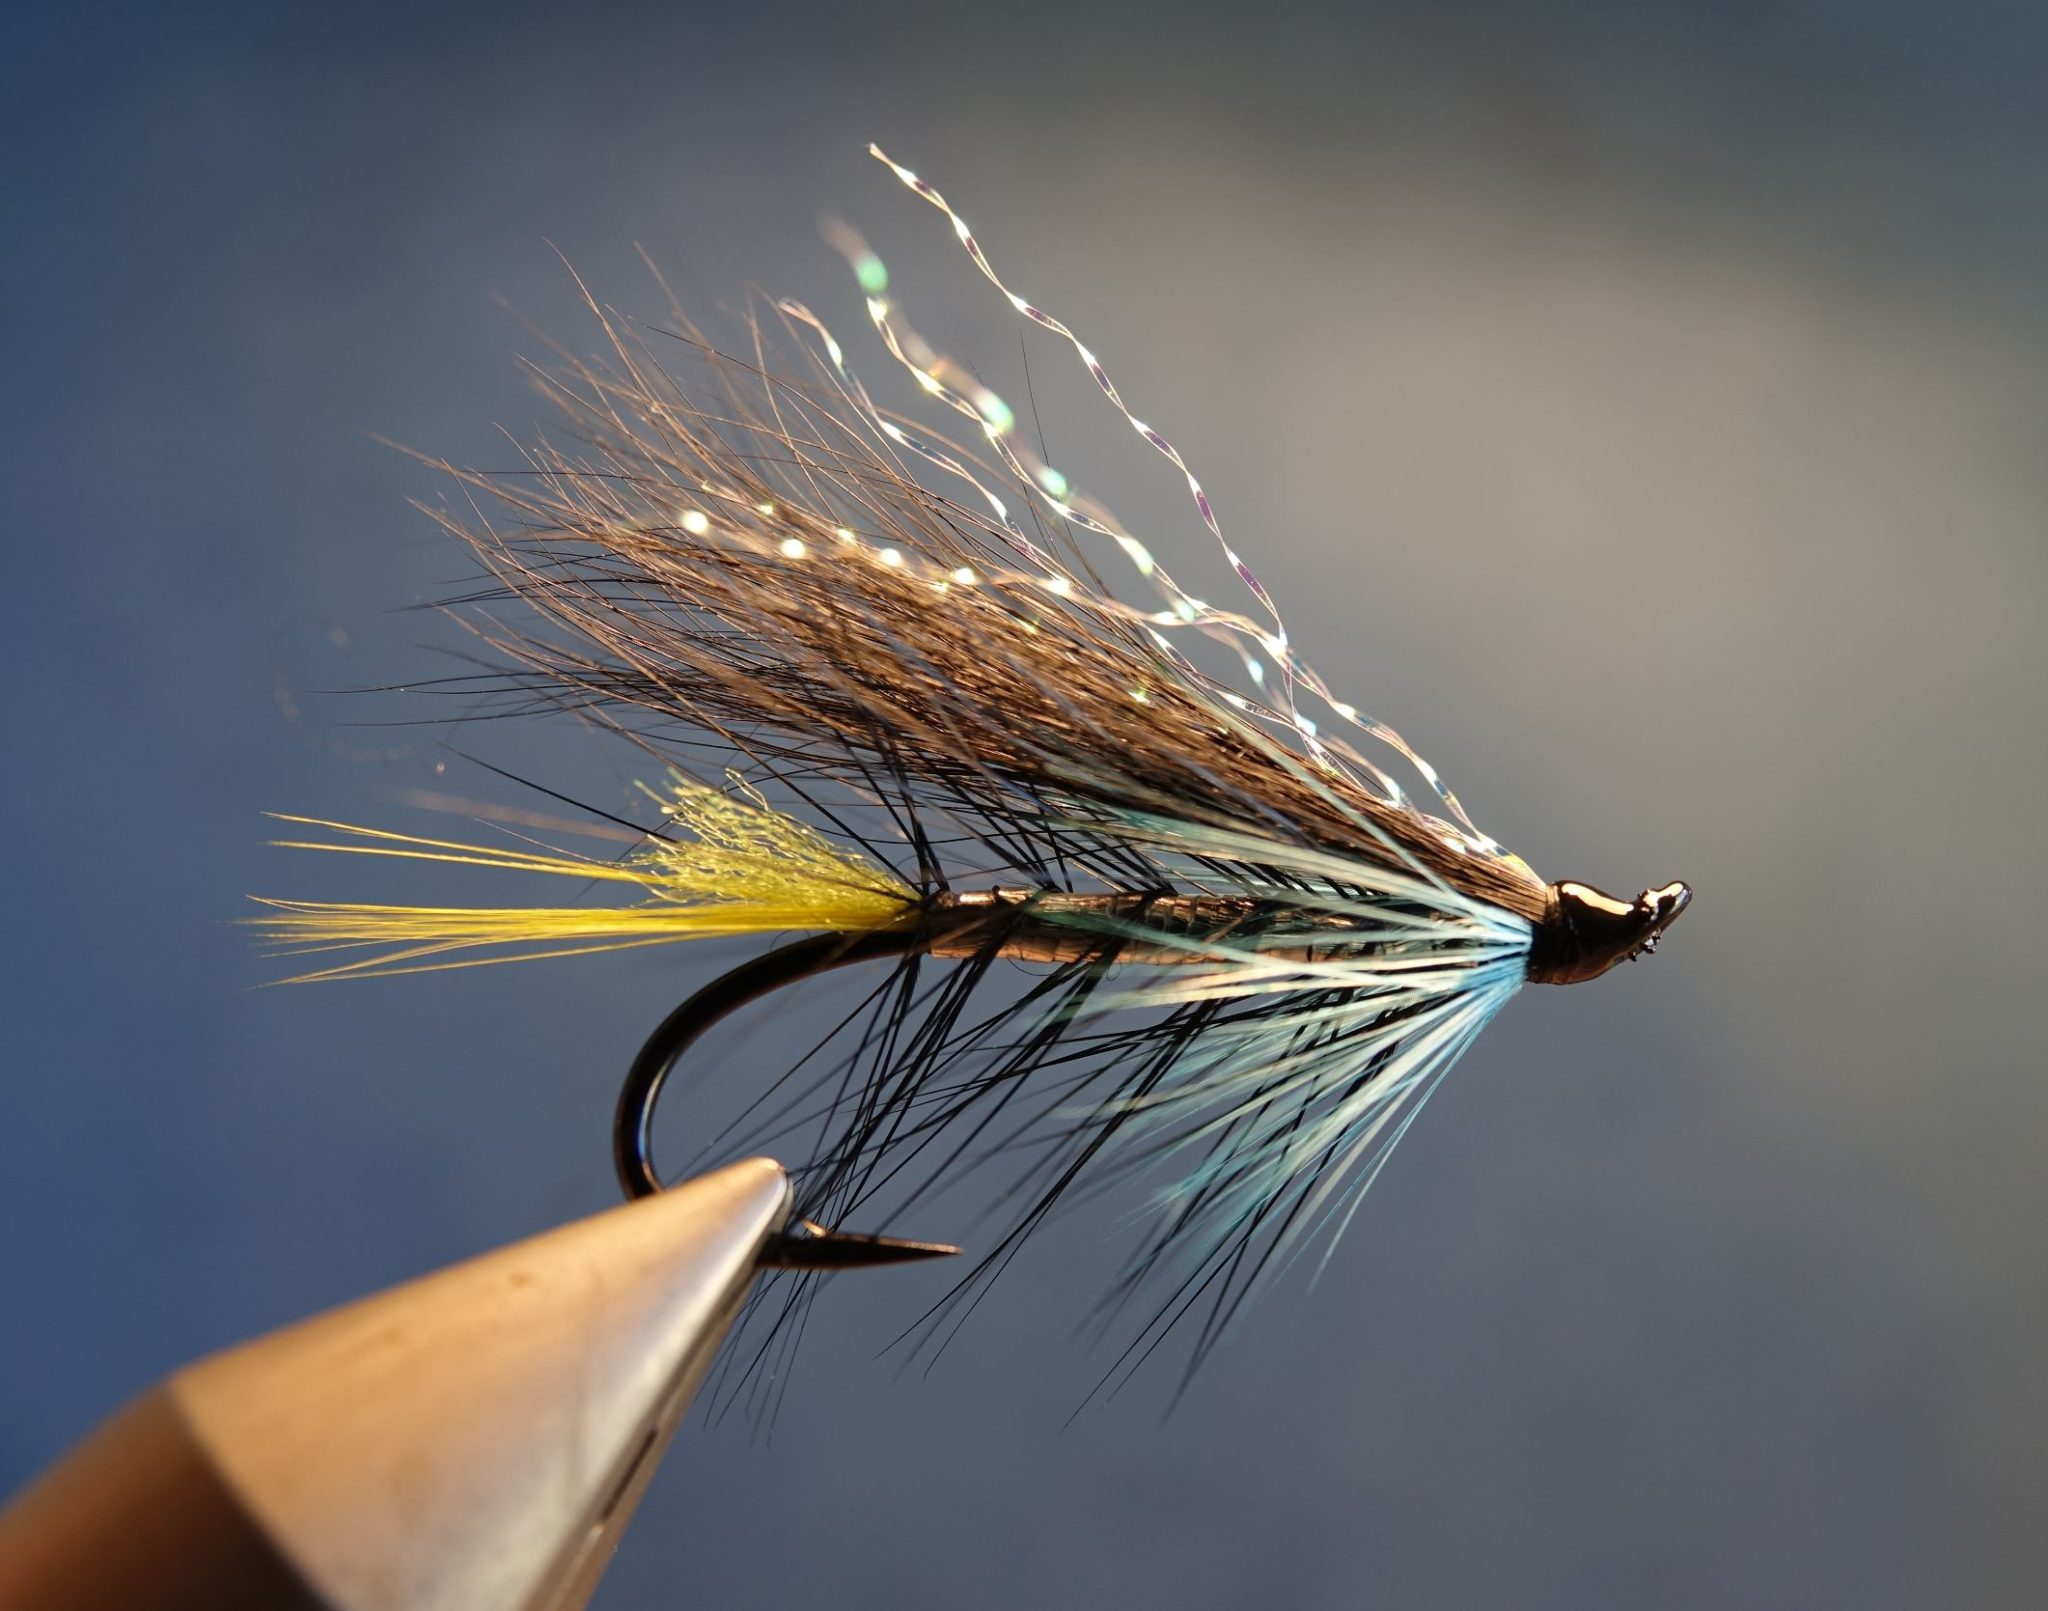 Mouche fly salmon saumon classique squirrel 6kg flytying eclosion